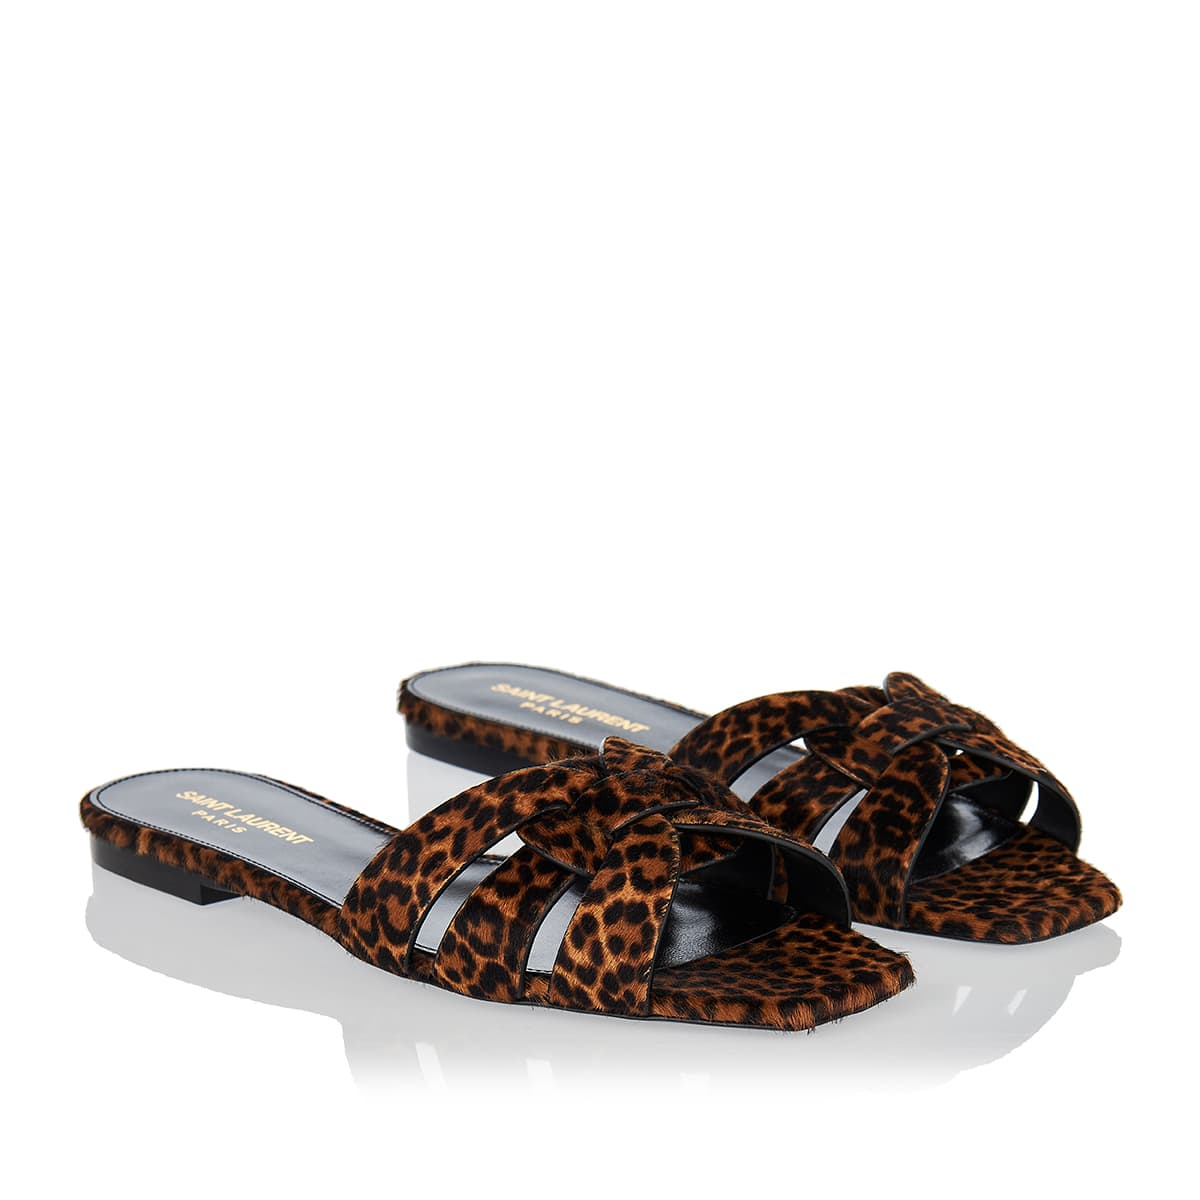 Tribute leopard calf-hair slides